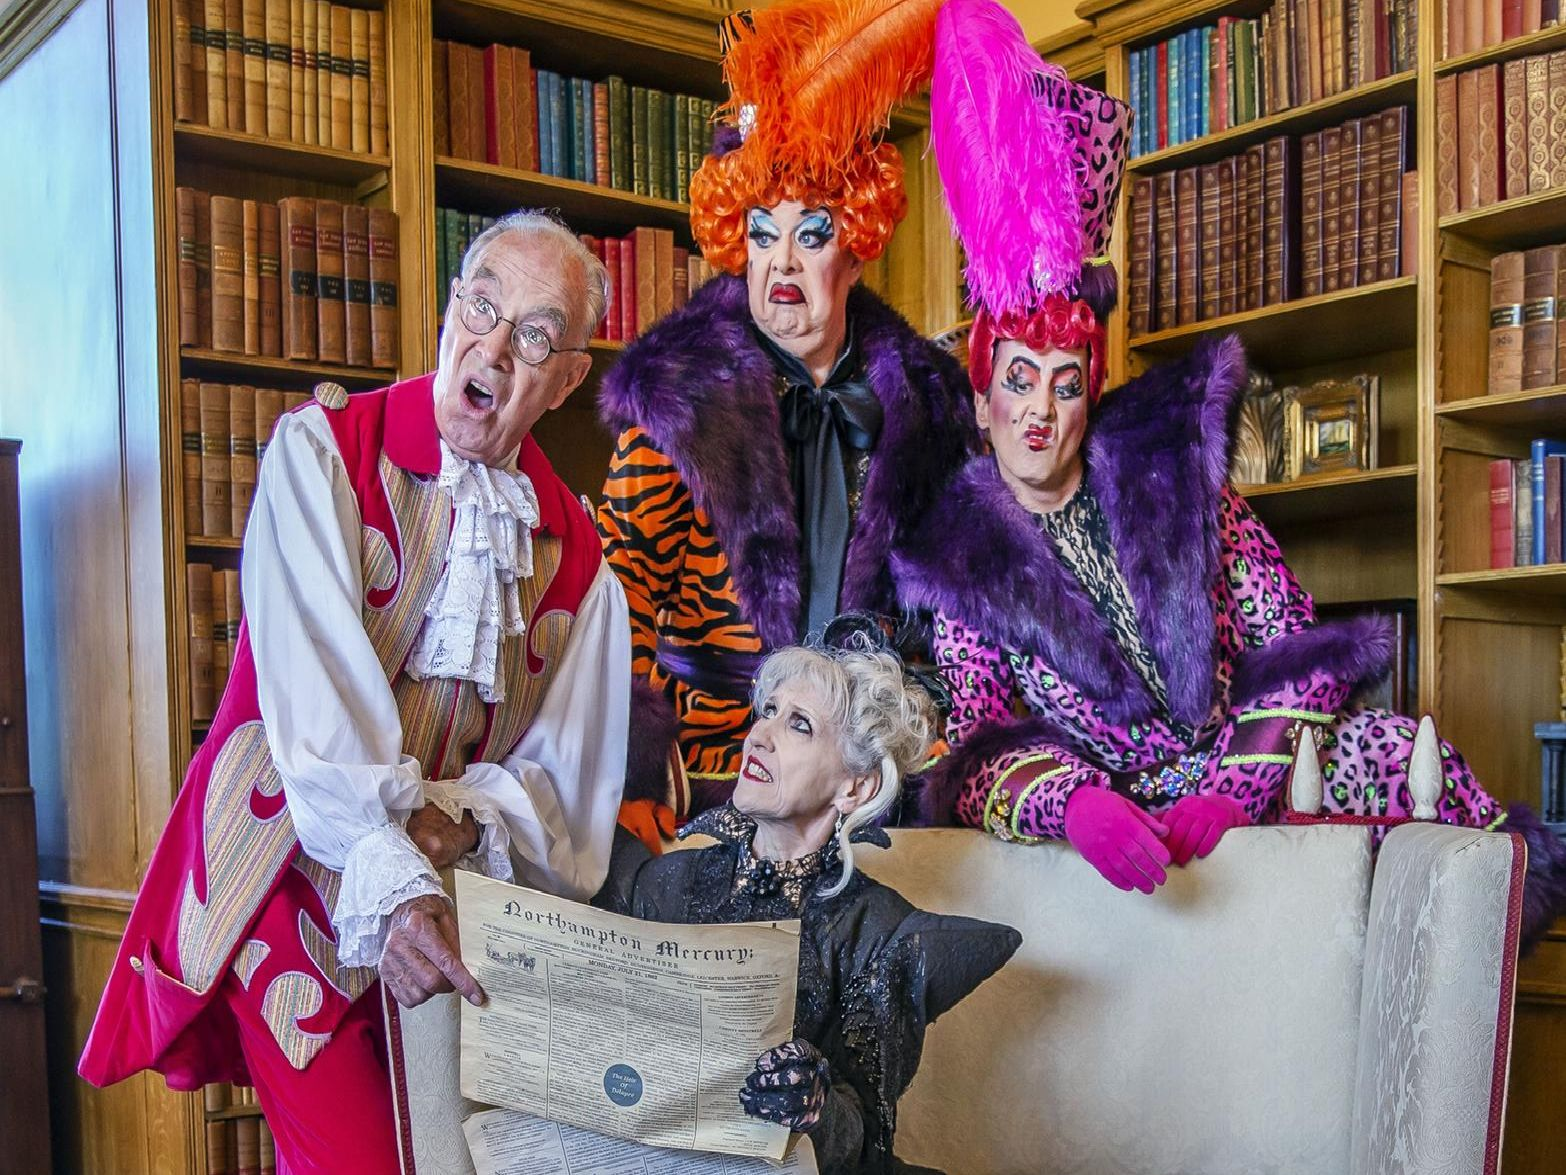 The Royal & Derngate launches its 2019 pantomime, Cinderella, at Delapre Abbey